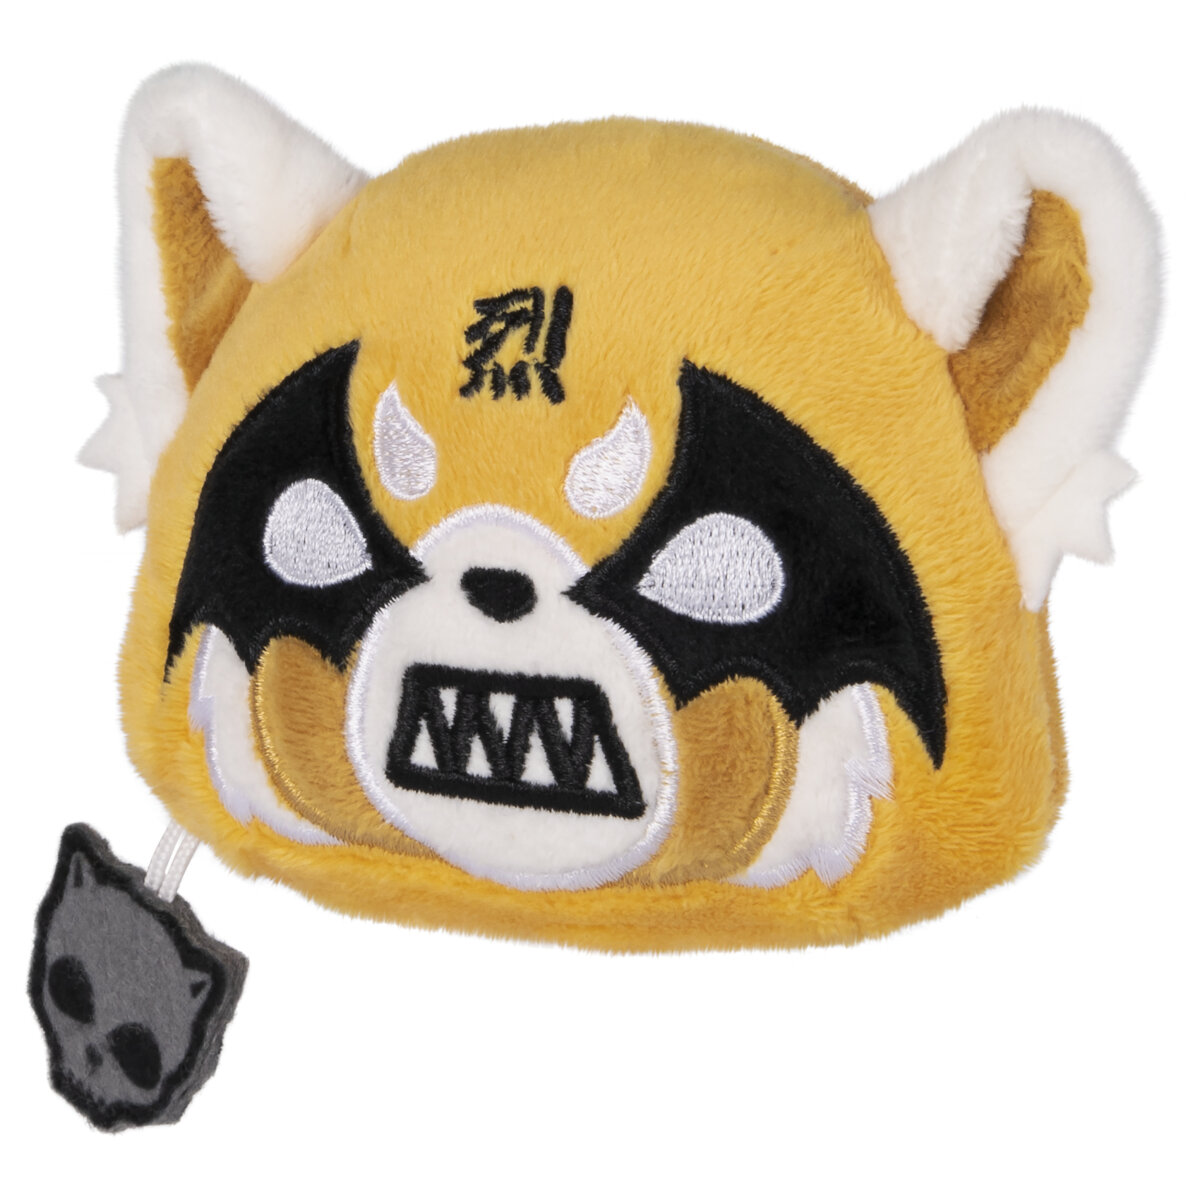 Aggretsuko-Scrub-Cleaner-Second-Alternate-Image